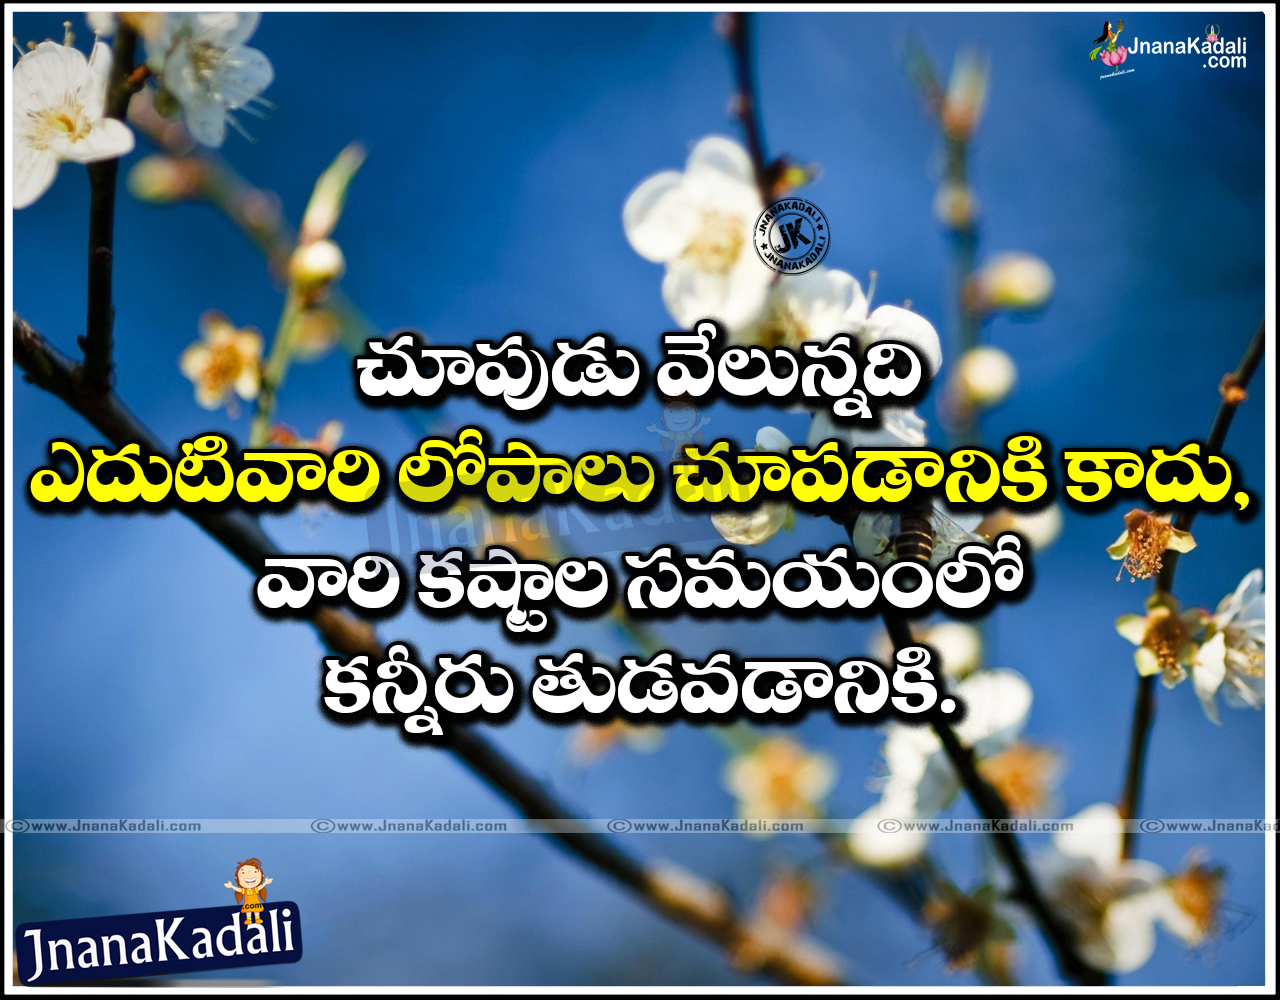 Telugu Quotes Telugu Good Night Quotations Telugu Friendship Quotes